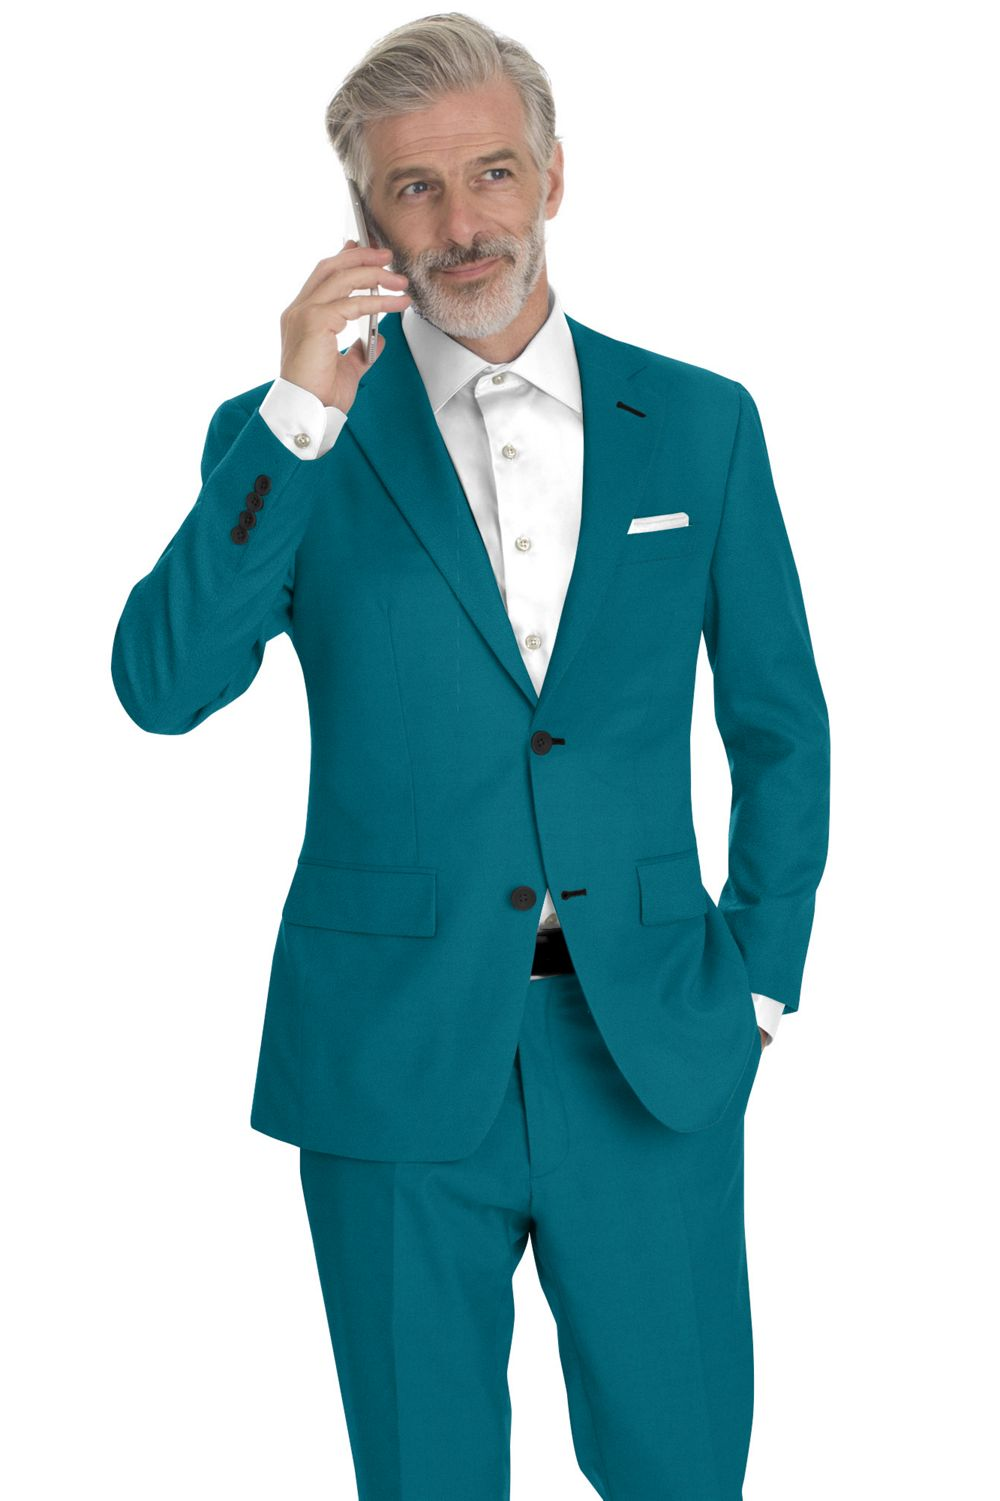 Emerald Solid Vitale Barberis Canonico Doeskin Super 100s